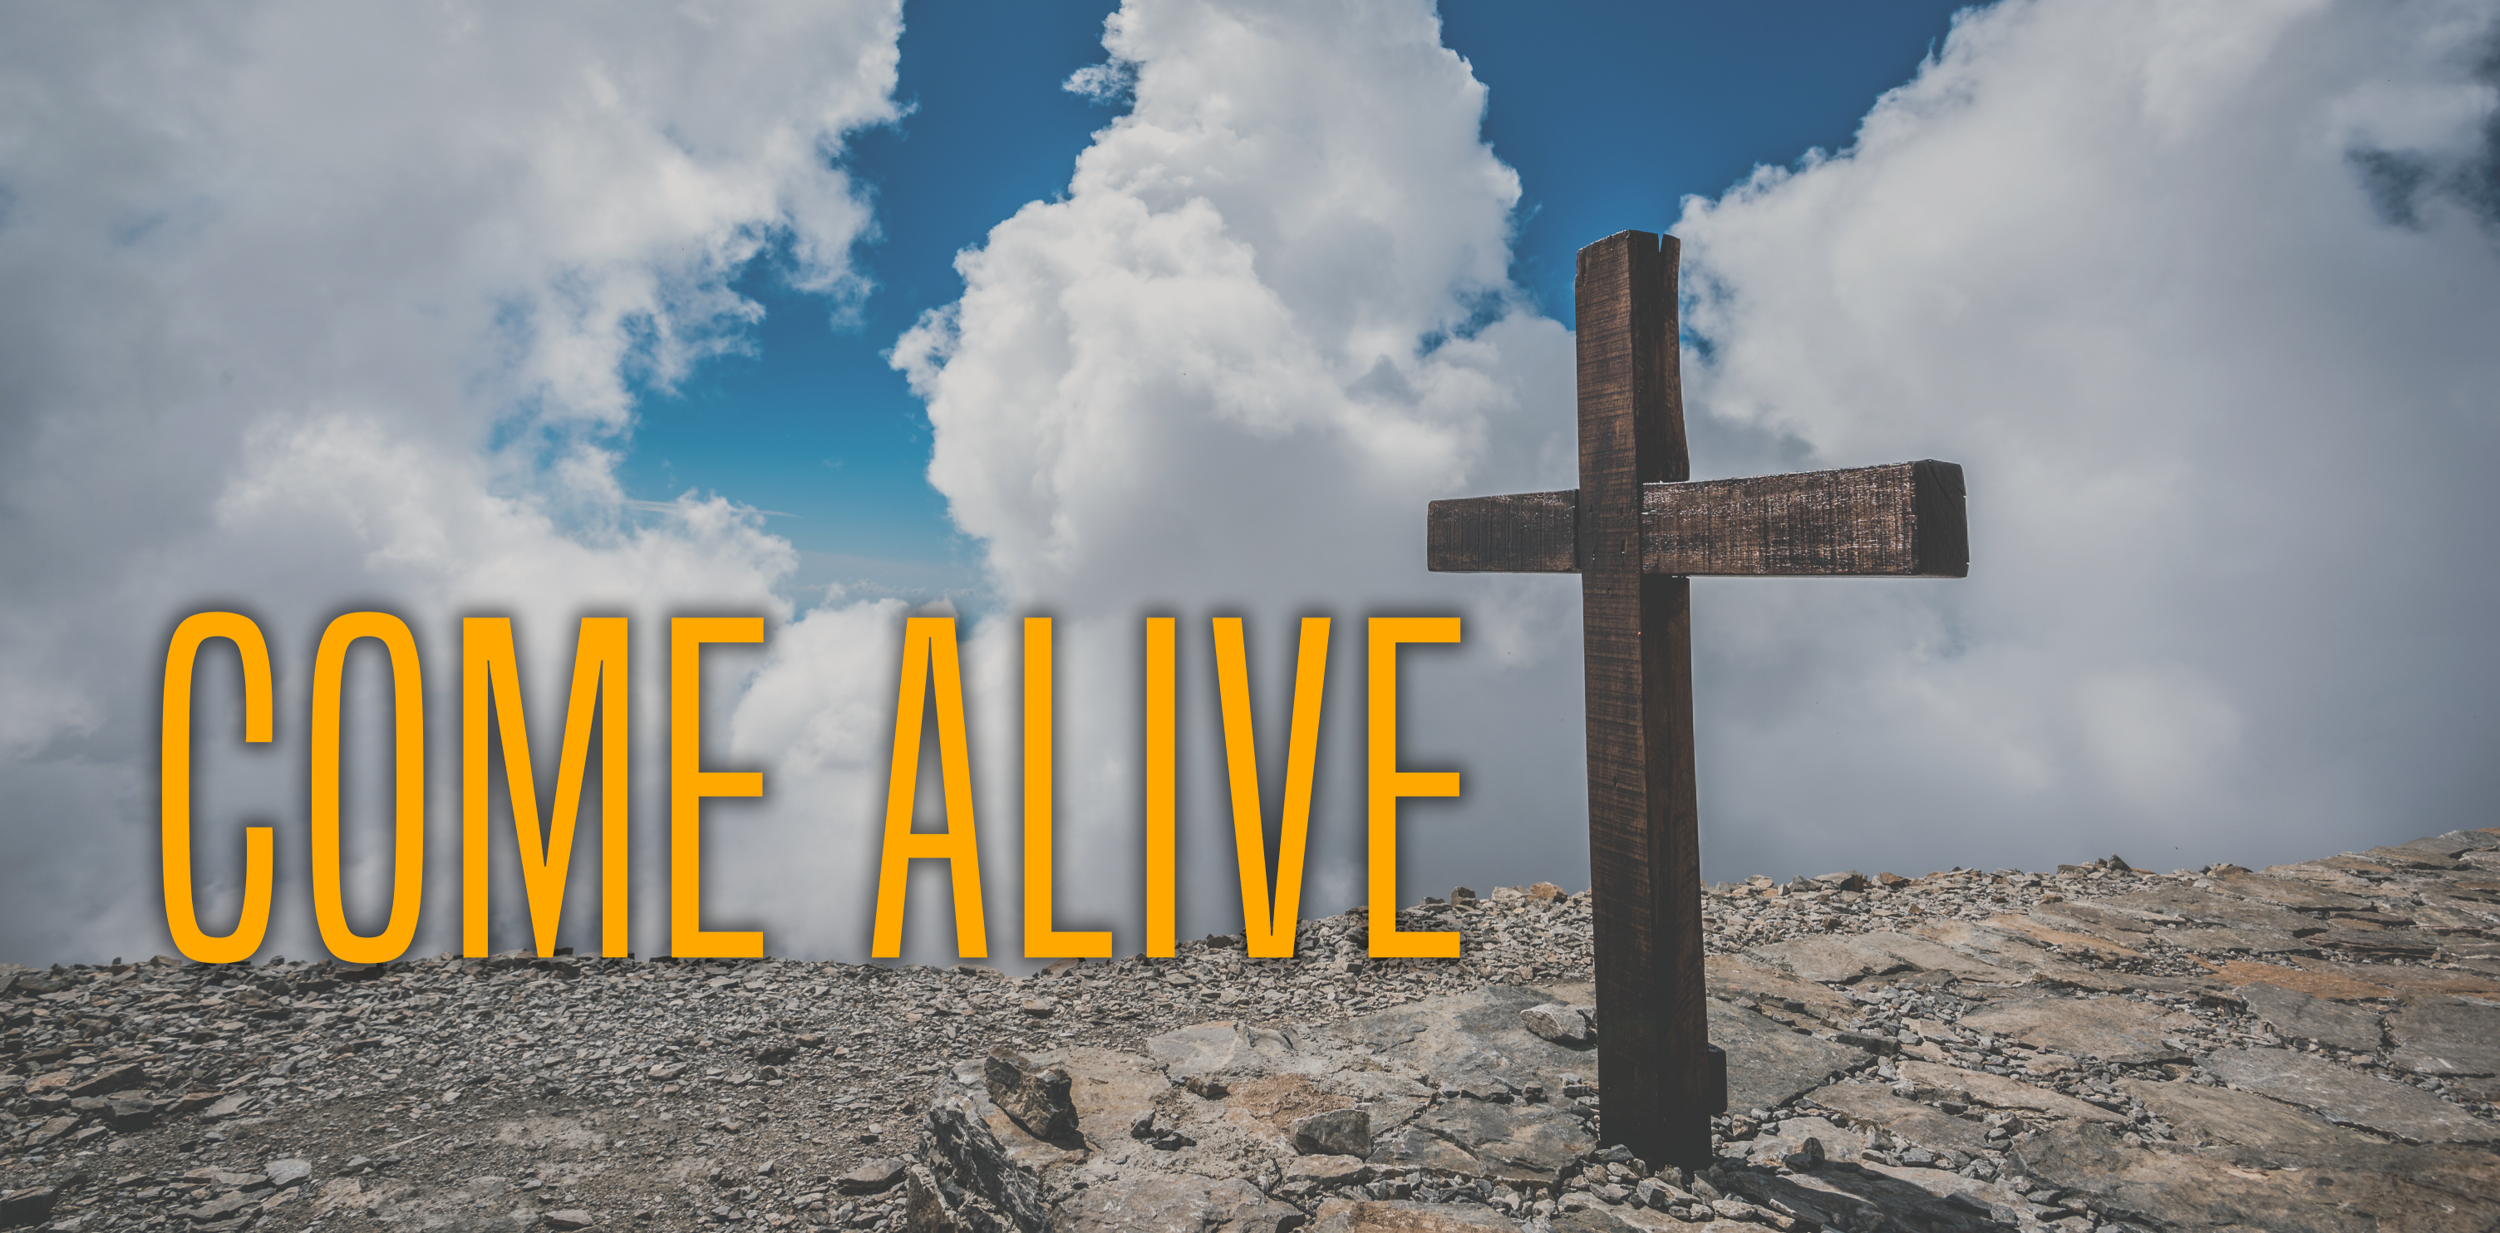 Come Alive- April 23, 2017